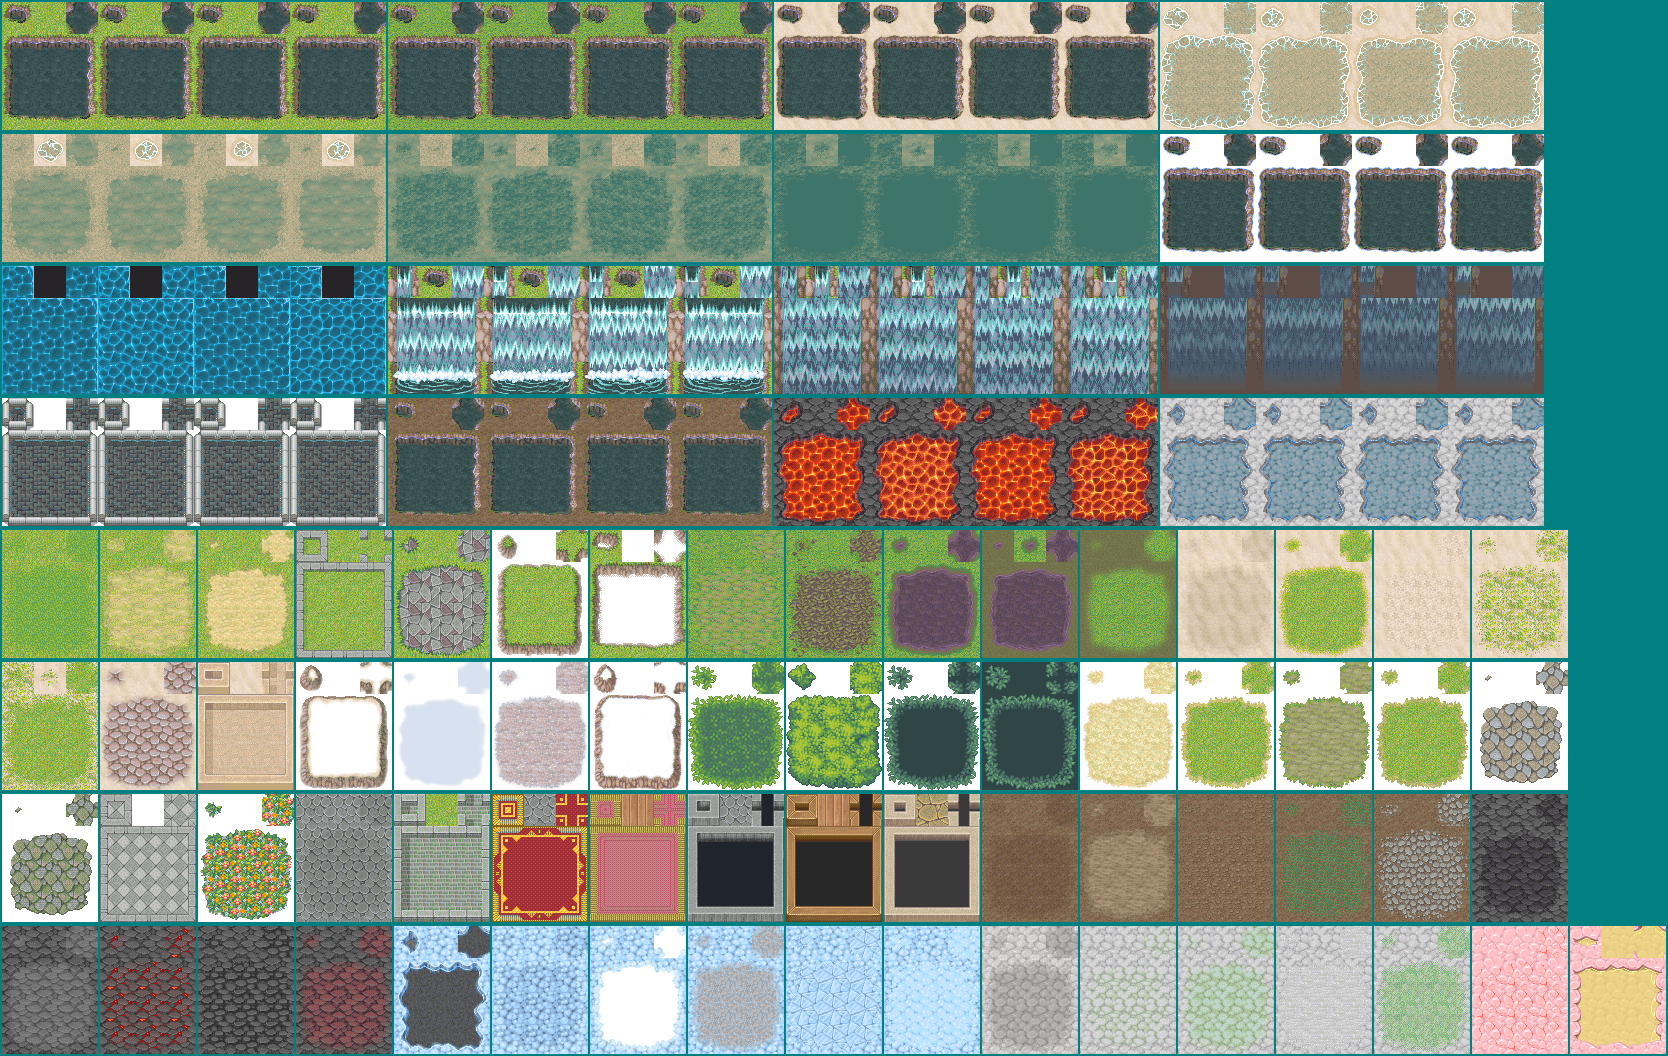 The Spriters Resource - Full Sheet View - RPG Maker XP